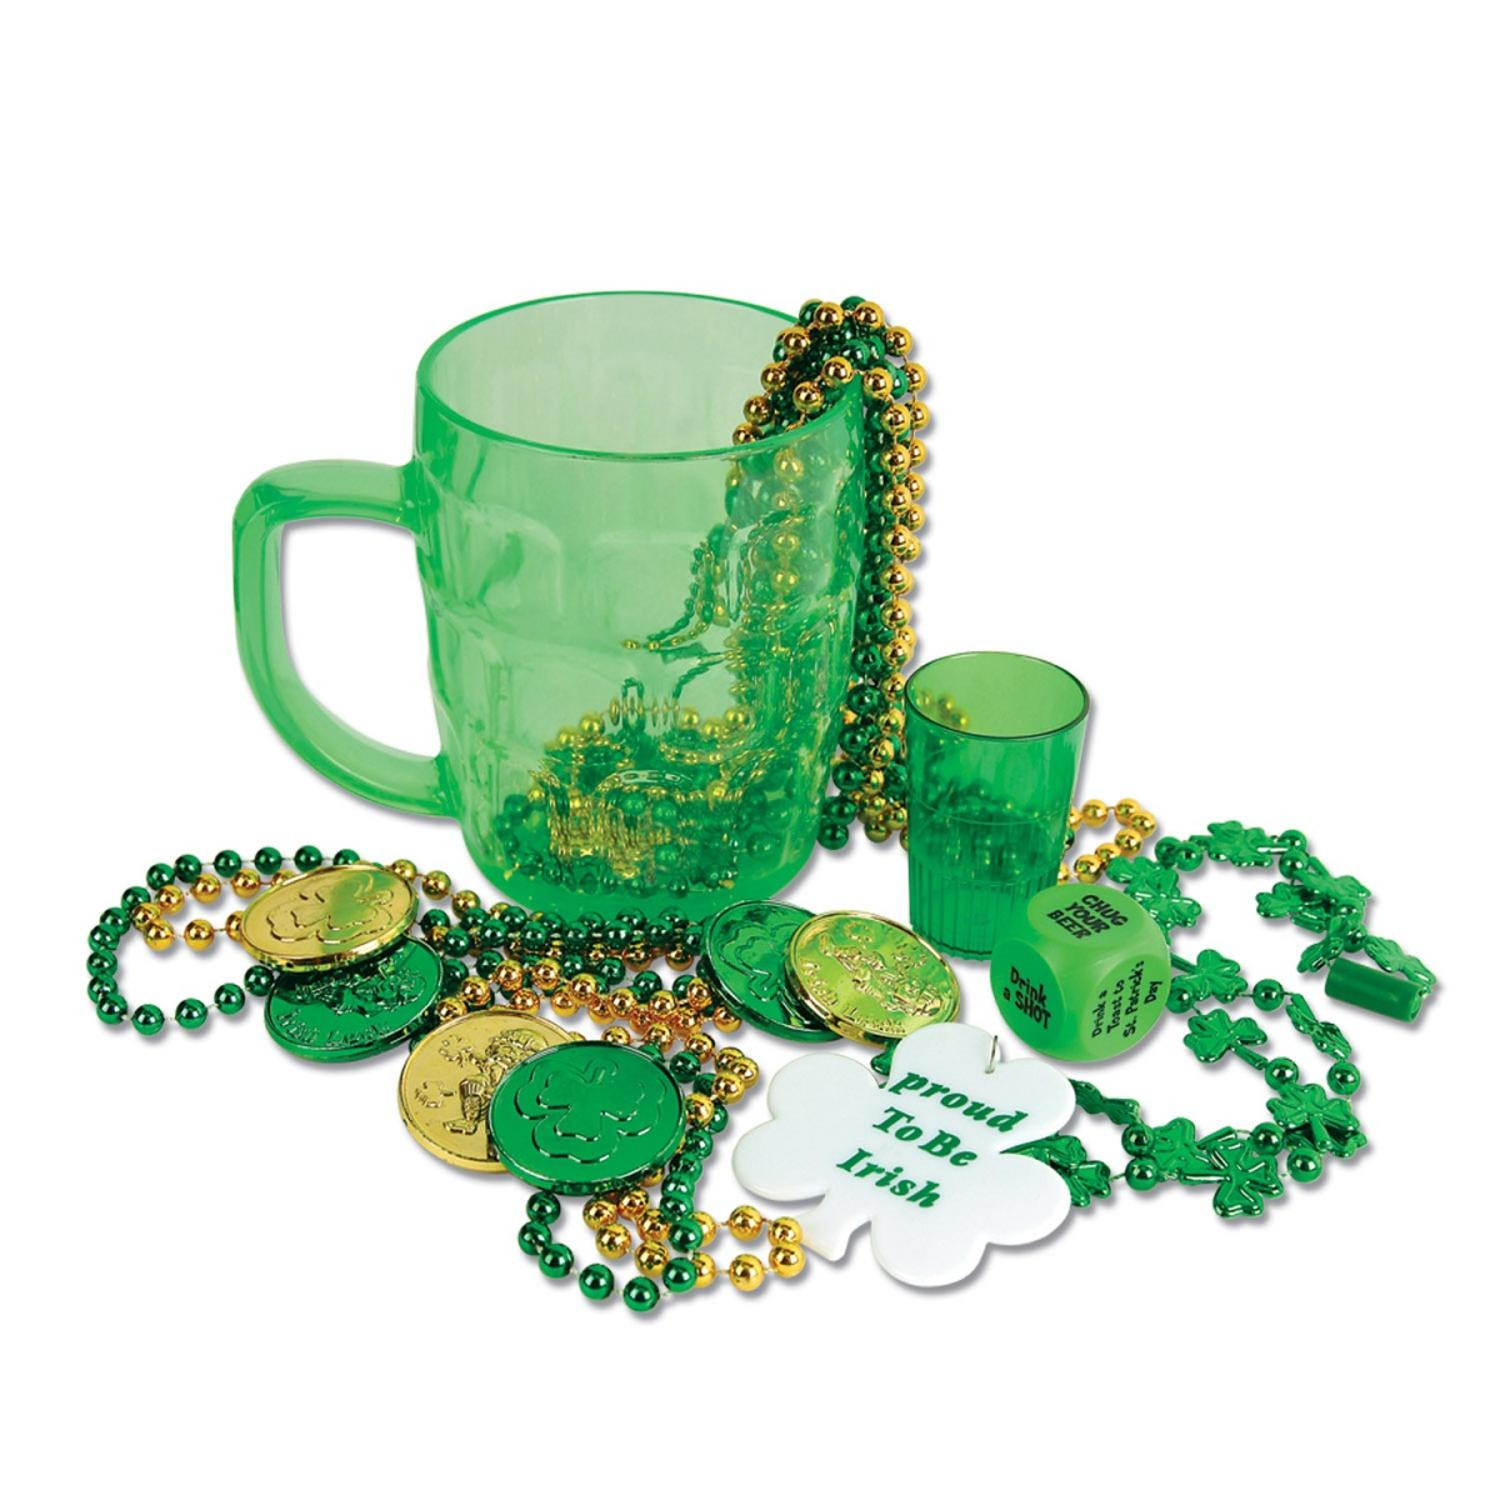 Club Pack of 96 St. Patrick's Day Mugs, Beads, Coins, Dice and Shot Glass Decorations by Party Central